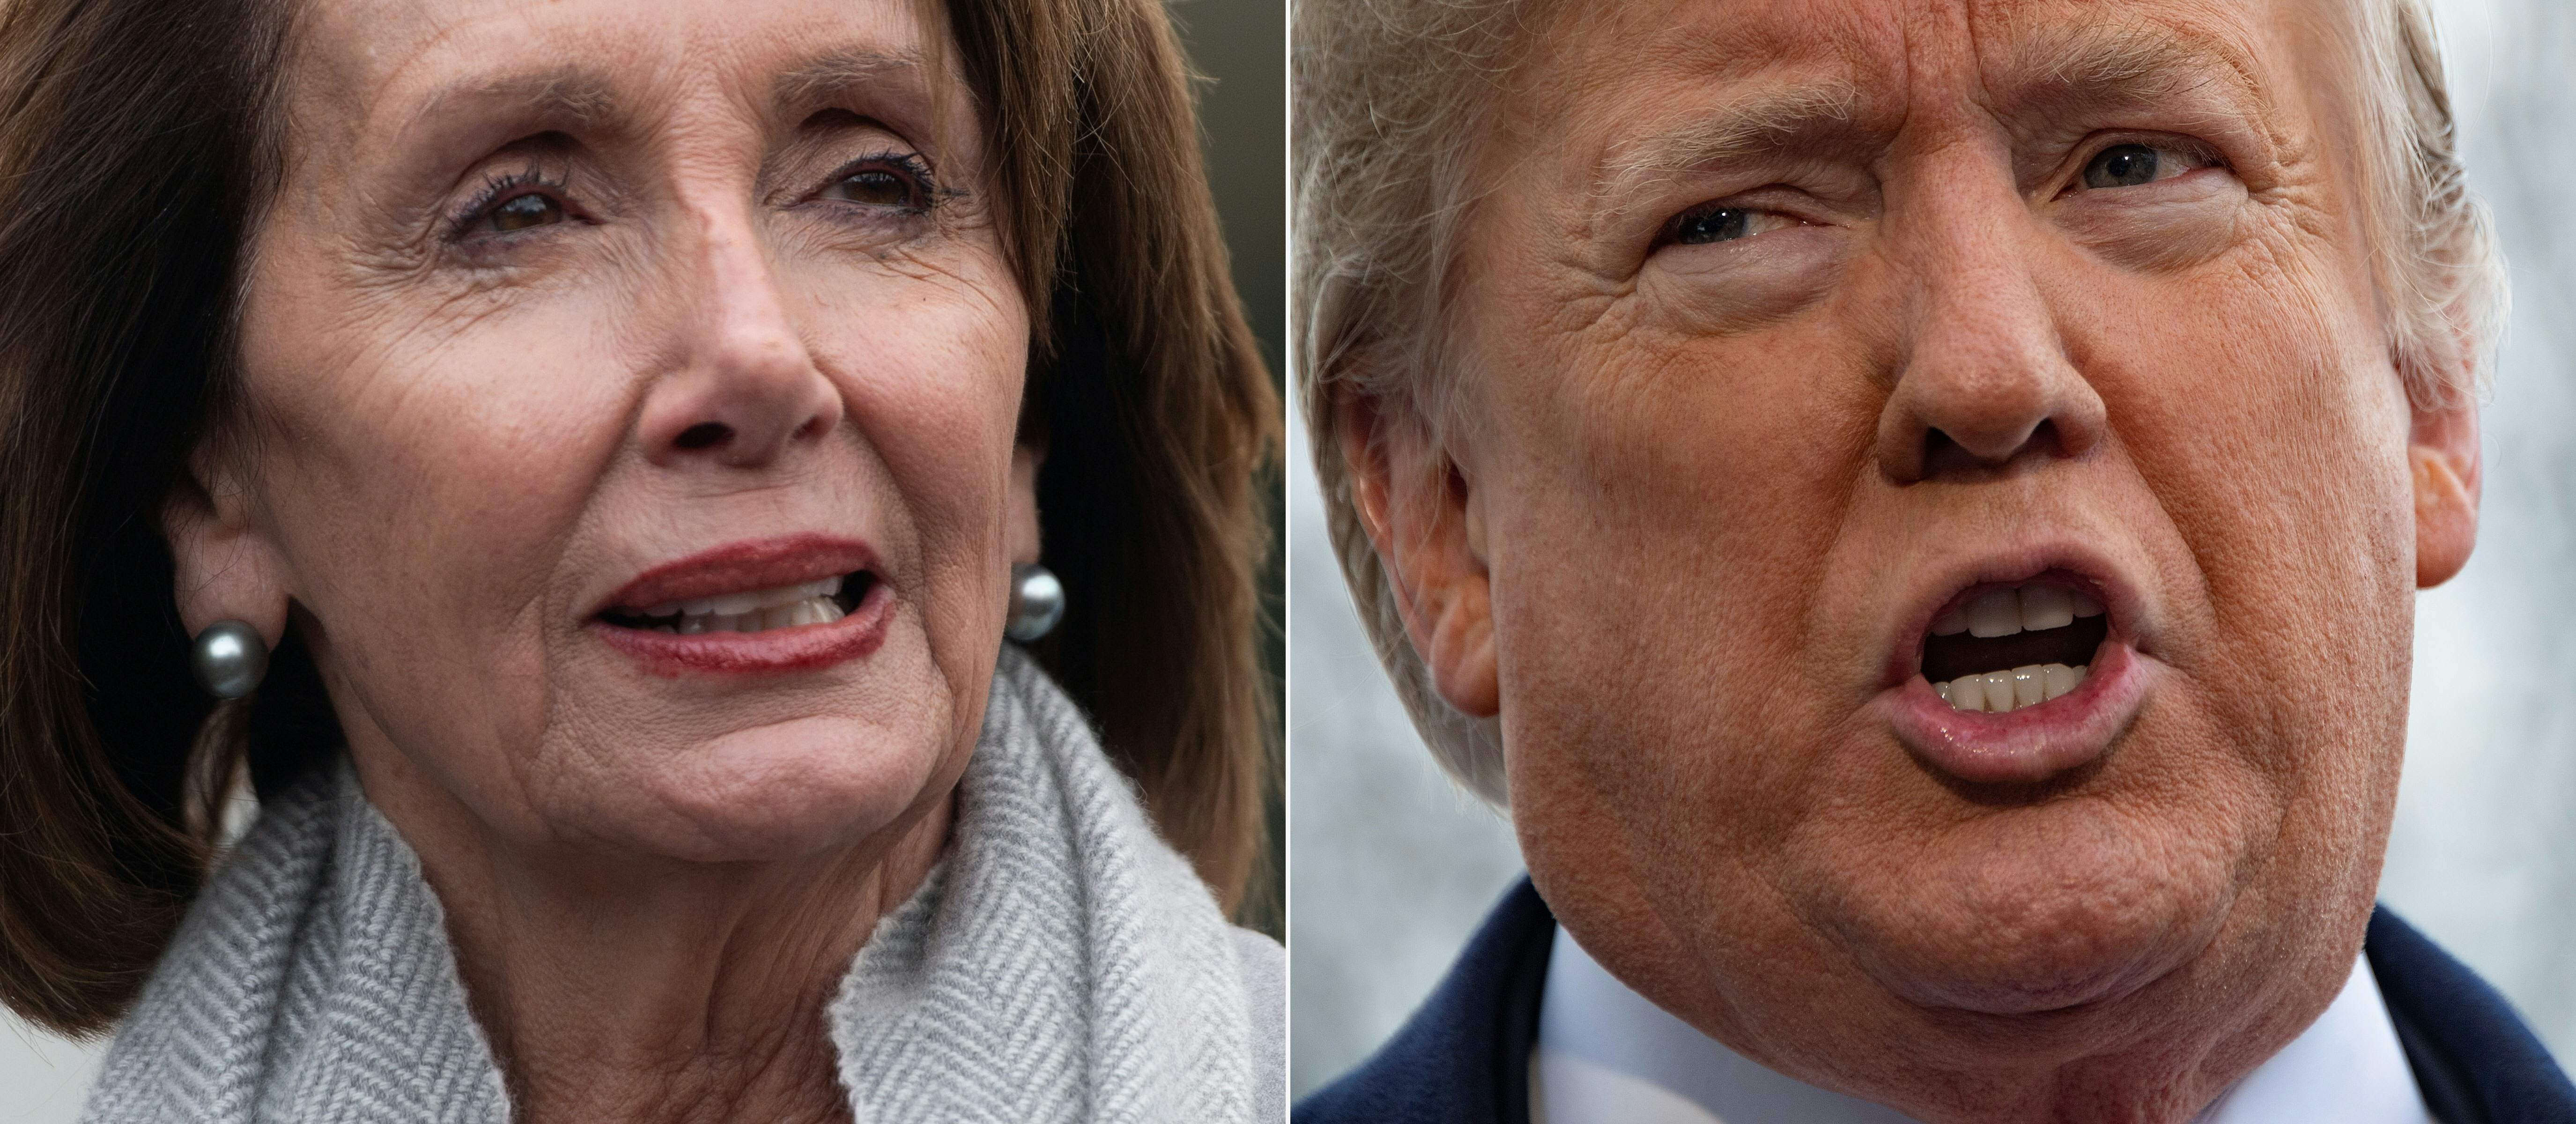 'It's anyone's guess what happens next': Democrats shoot down Trump's plan to end shutdown